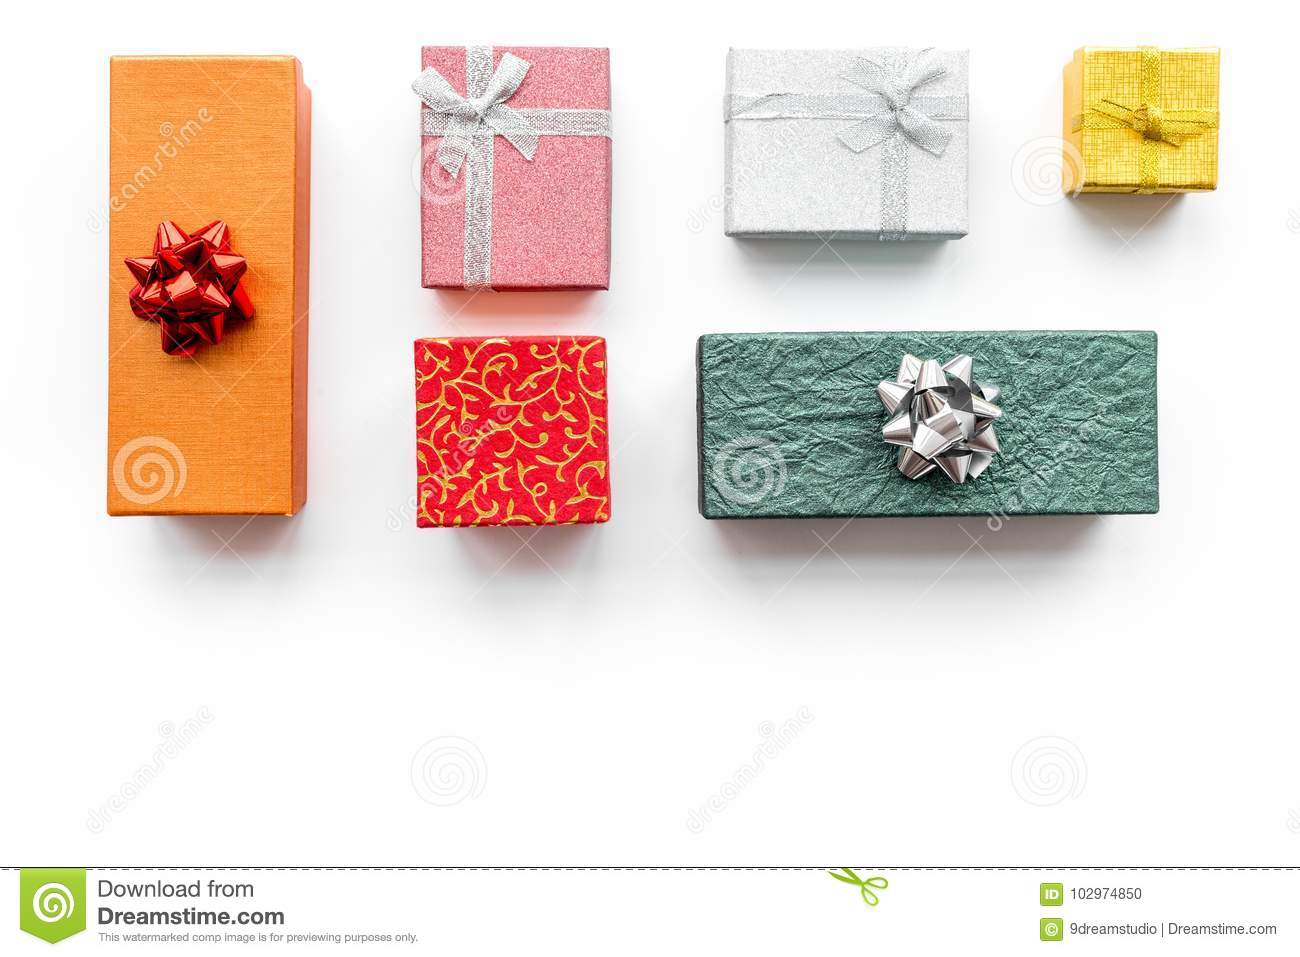 Cyber Monday Sales With Boxes For Christmas Gifts On White ...